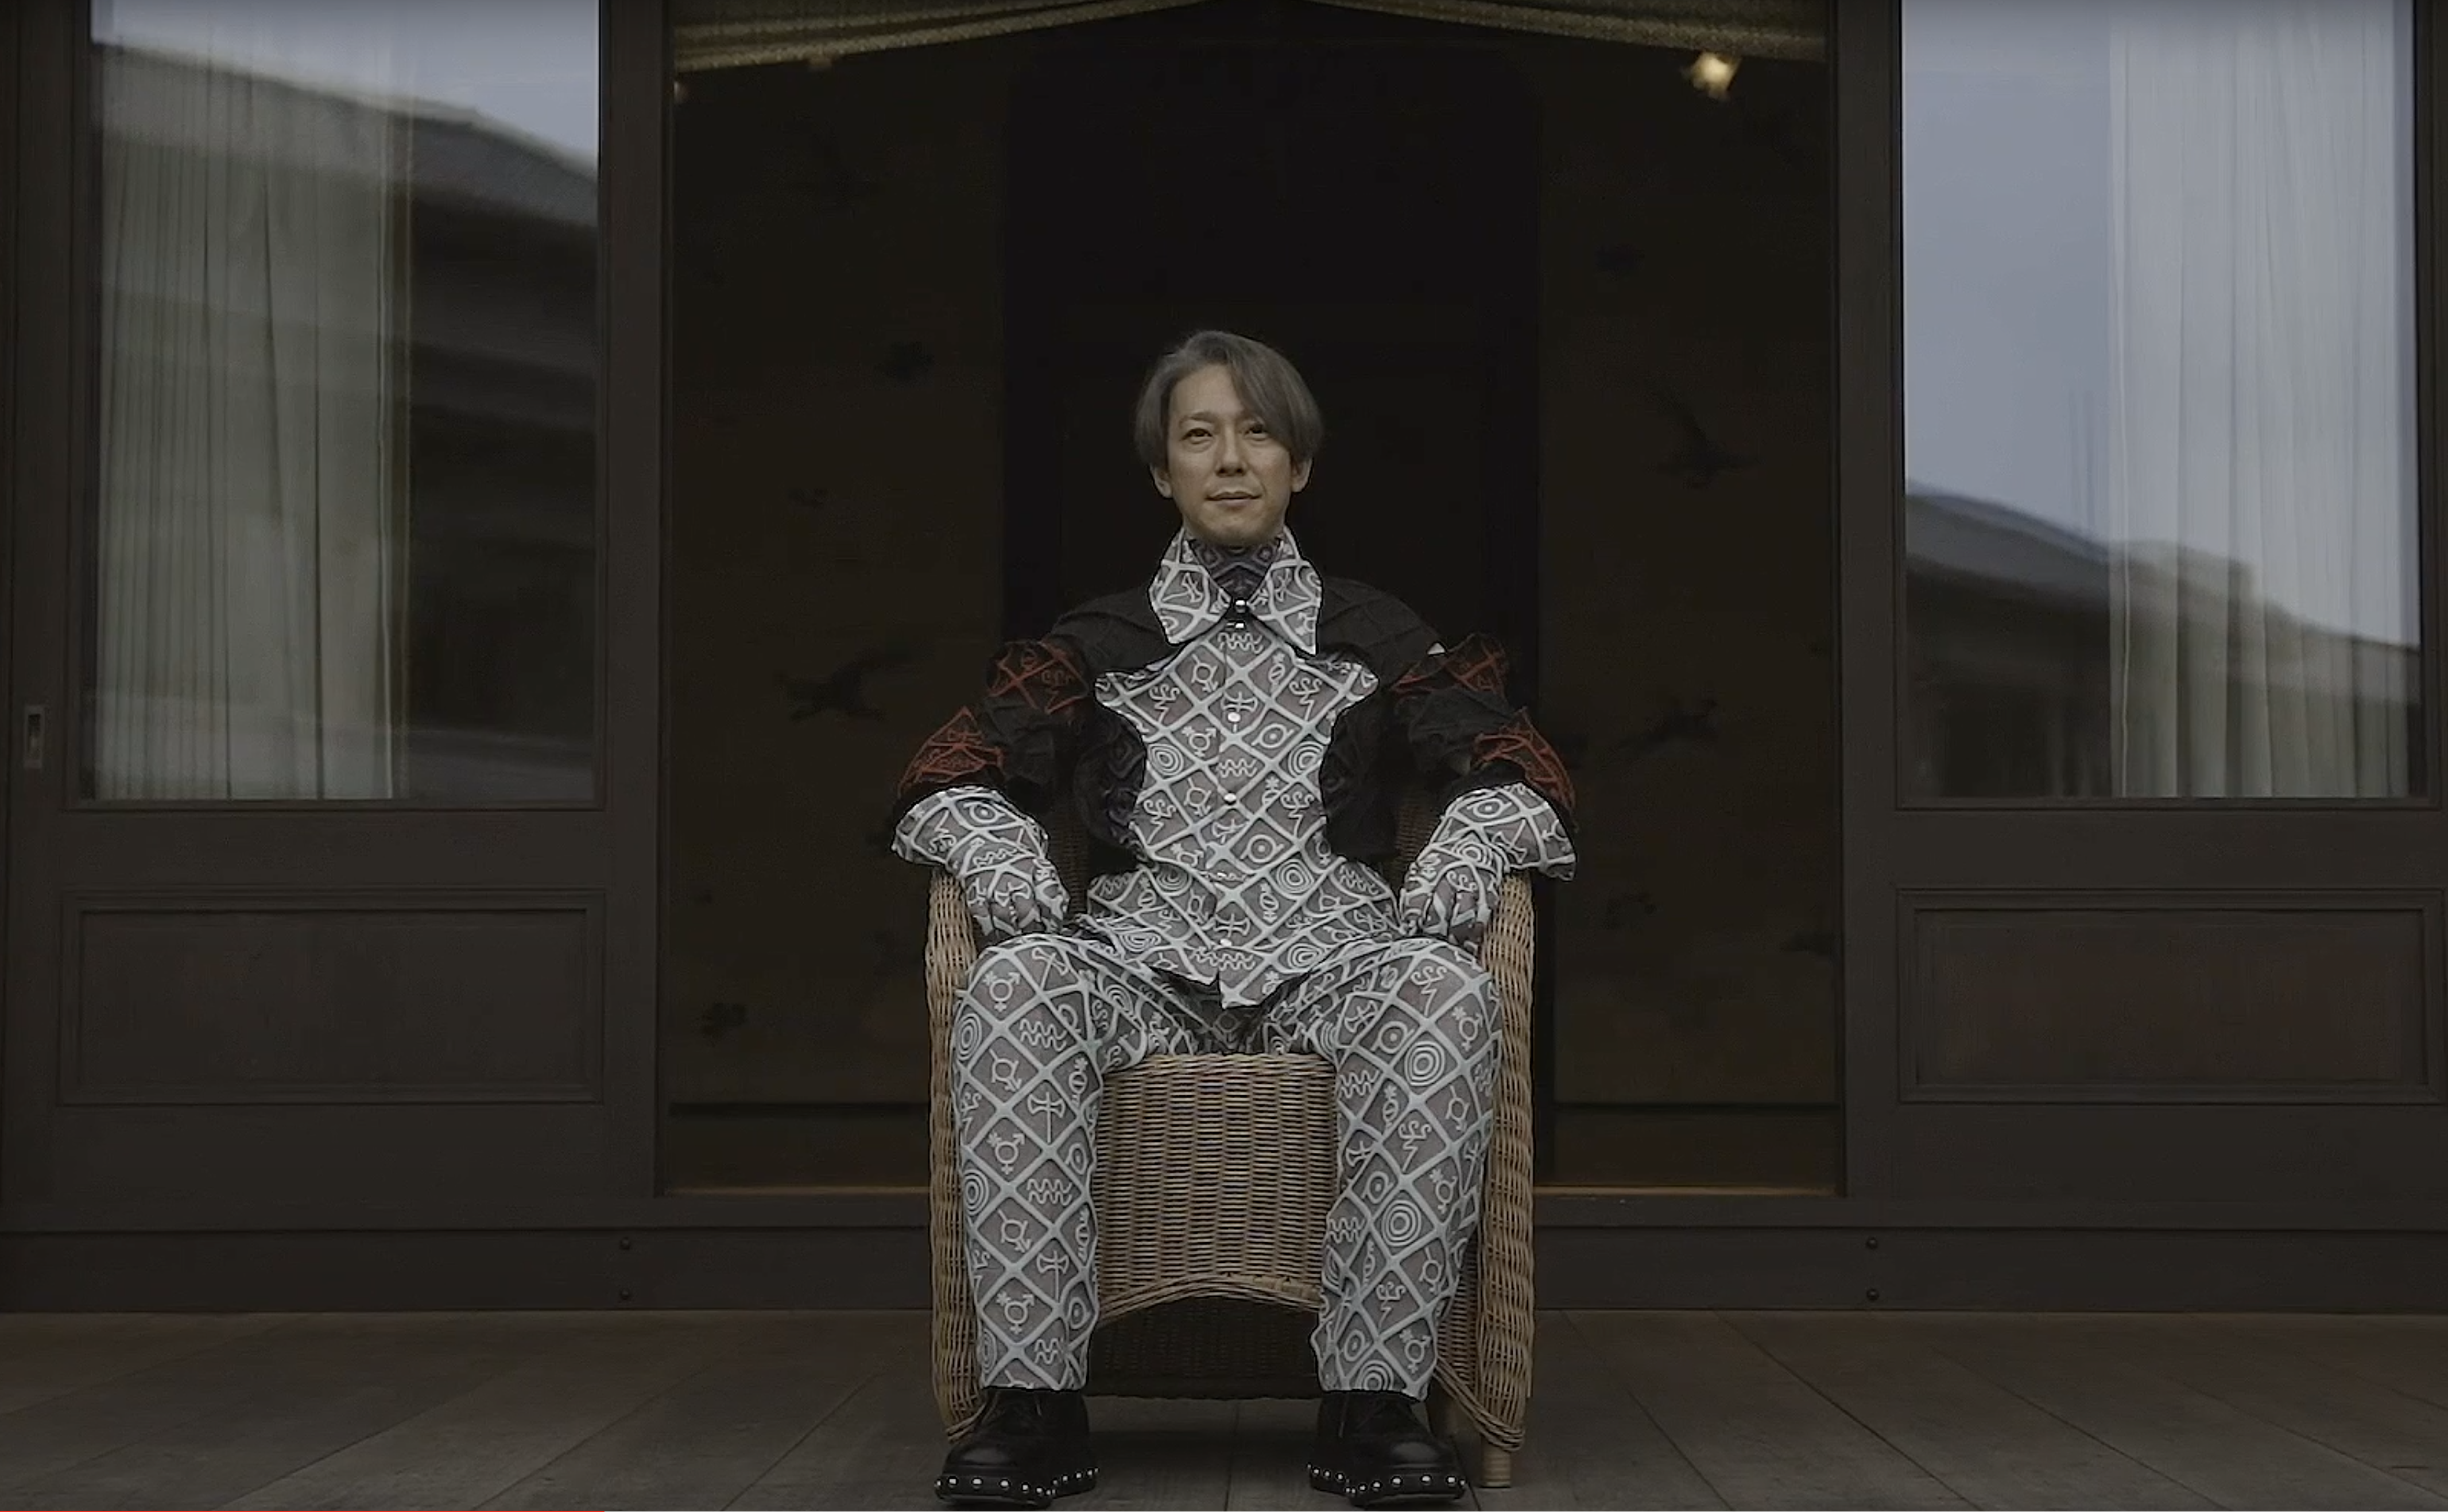 Motoaki Higashino, a great-great-grandson of Japan's Emperor Meiji, featured in a series of film presented by Japanese retailer GR8.